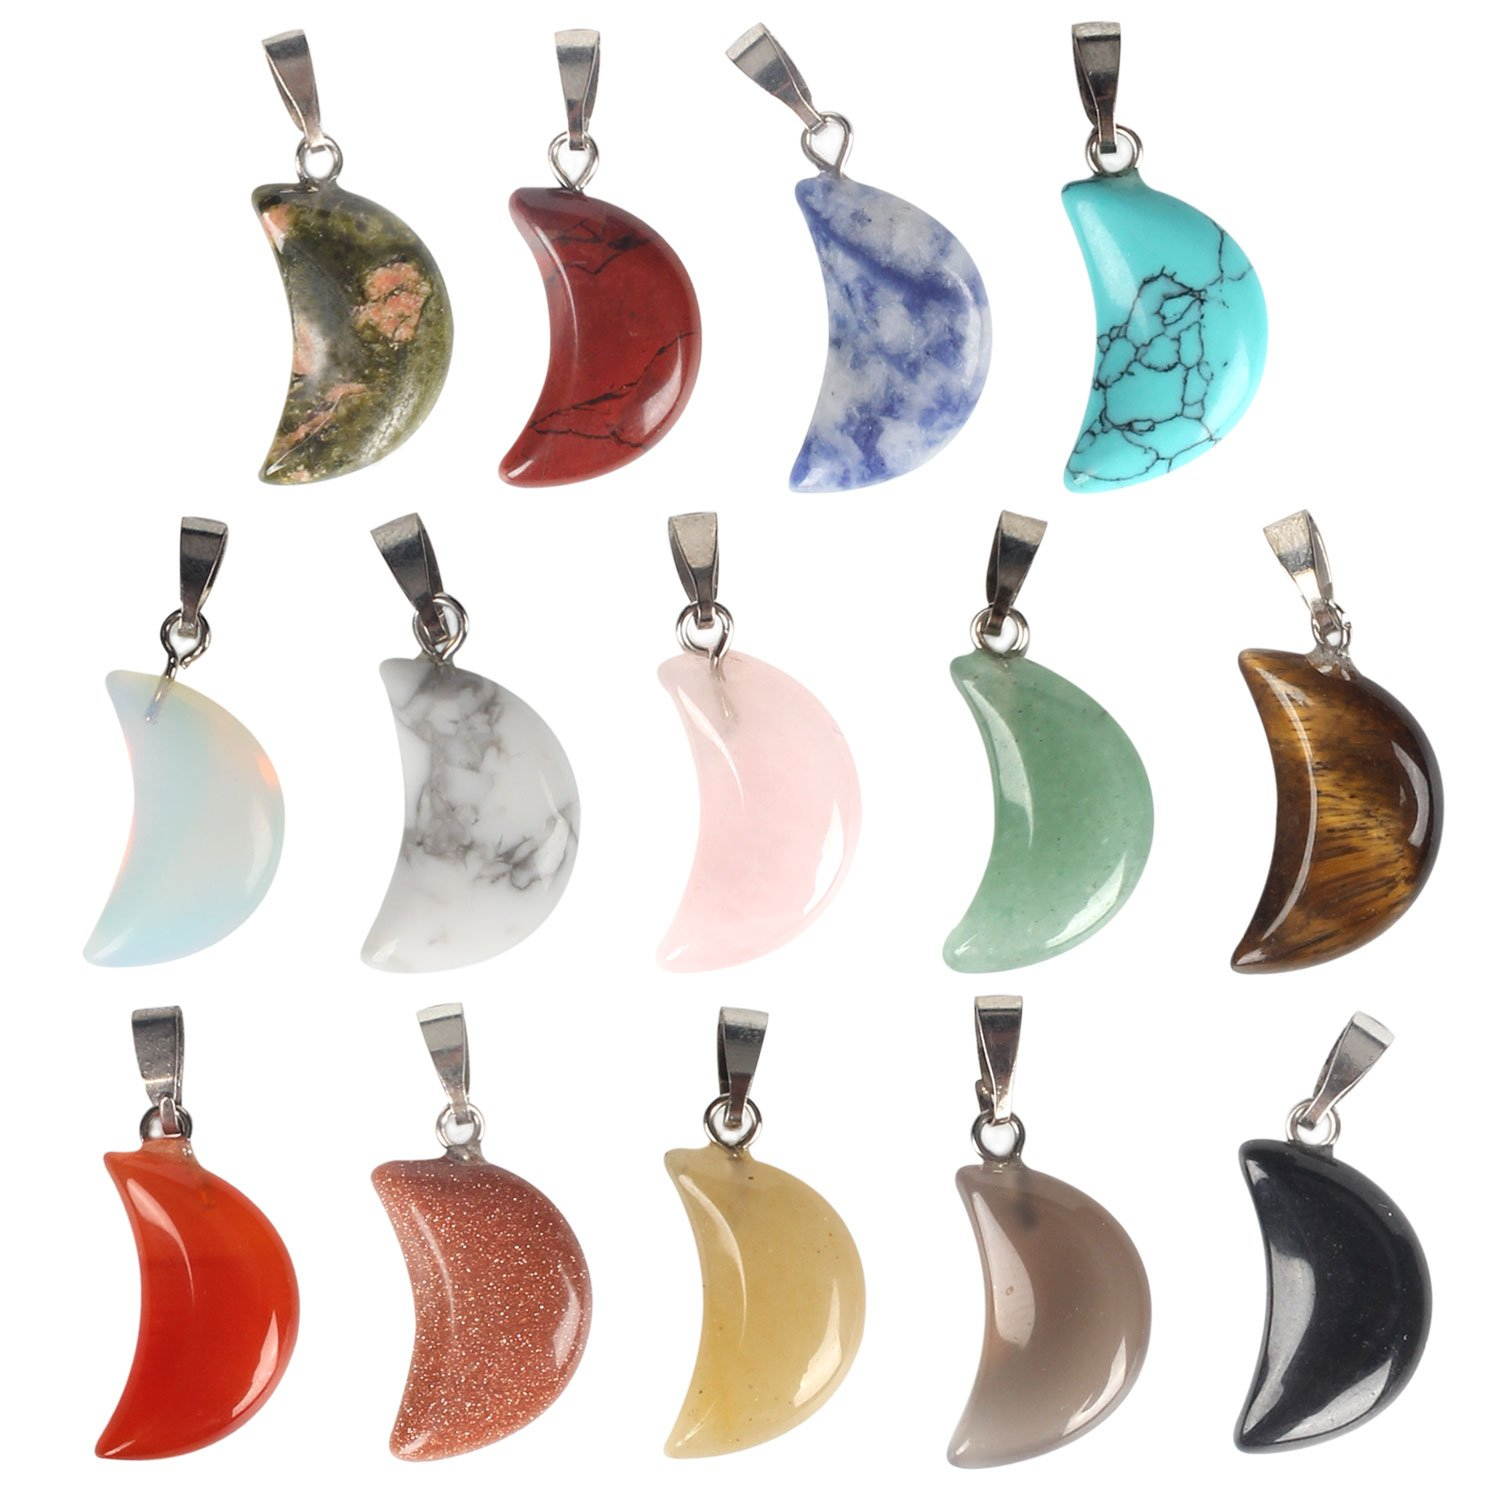 Wholesale 14 PCS Crescent Moon Shaped Charm Natural Stone Pendant with Silver Plated Brass Bail Chakra Healing Point Reiki Charm Bulk for Jewelry Making SPUNKYCHARMS 4336819546